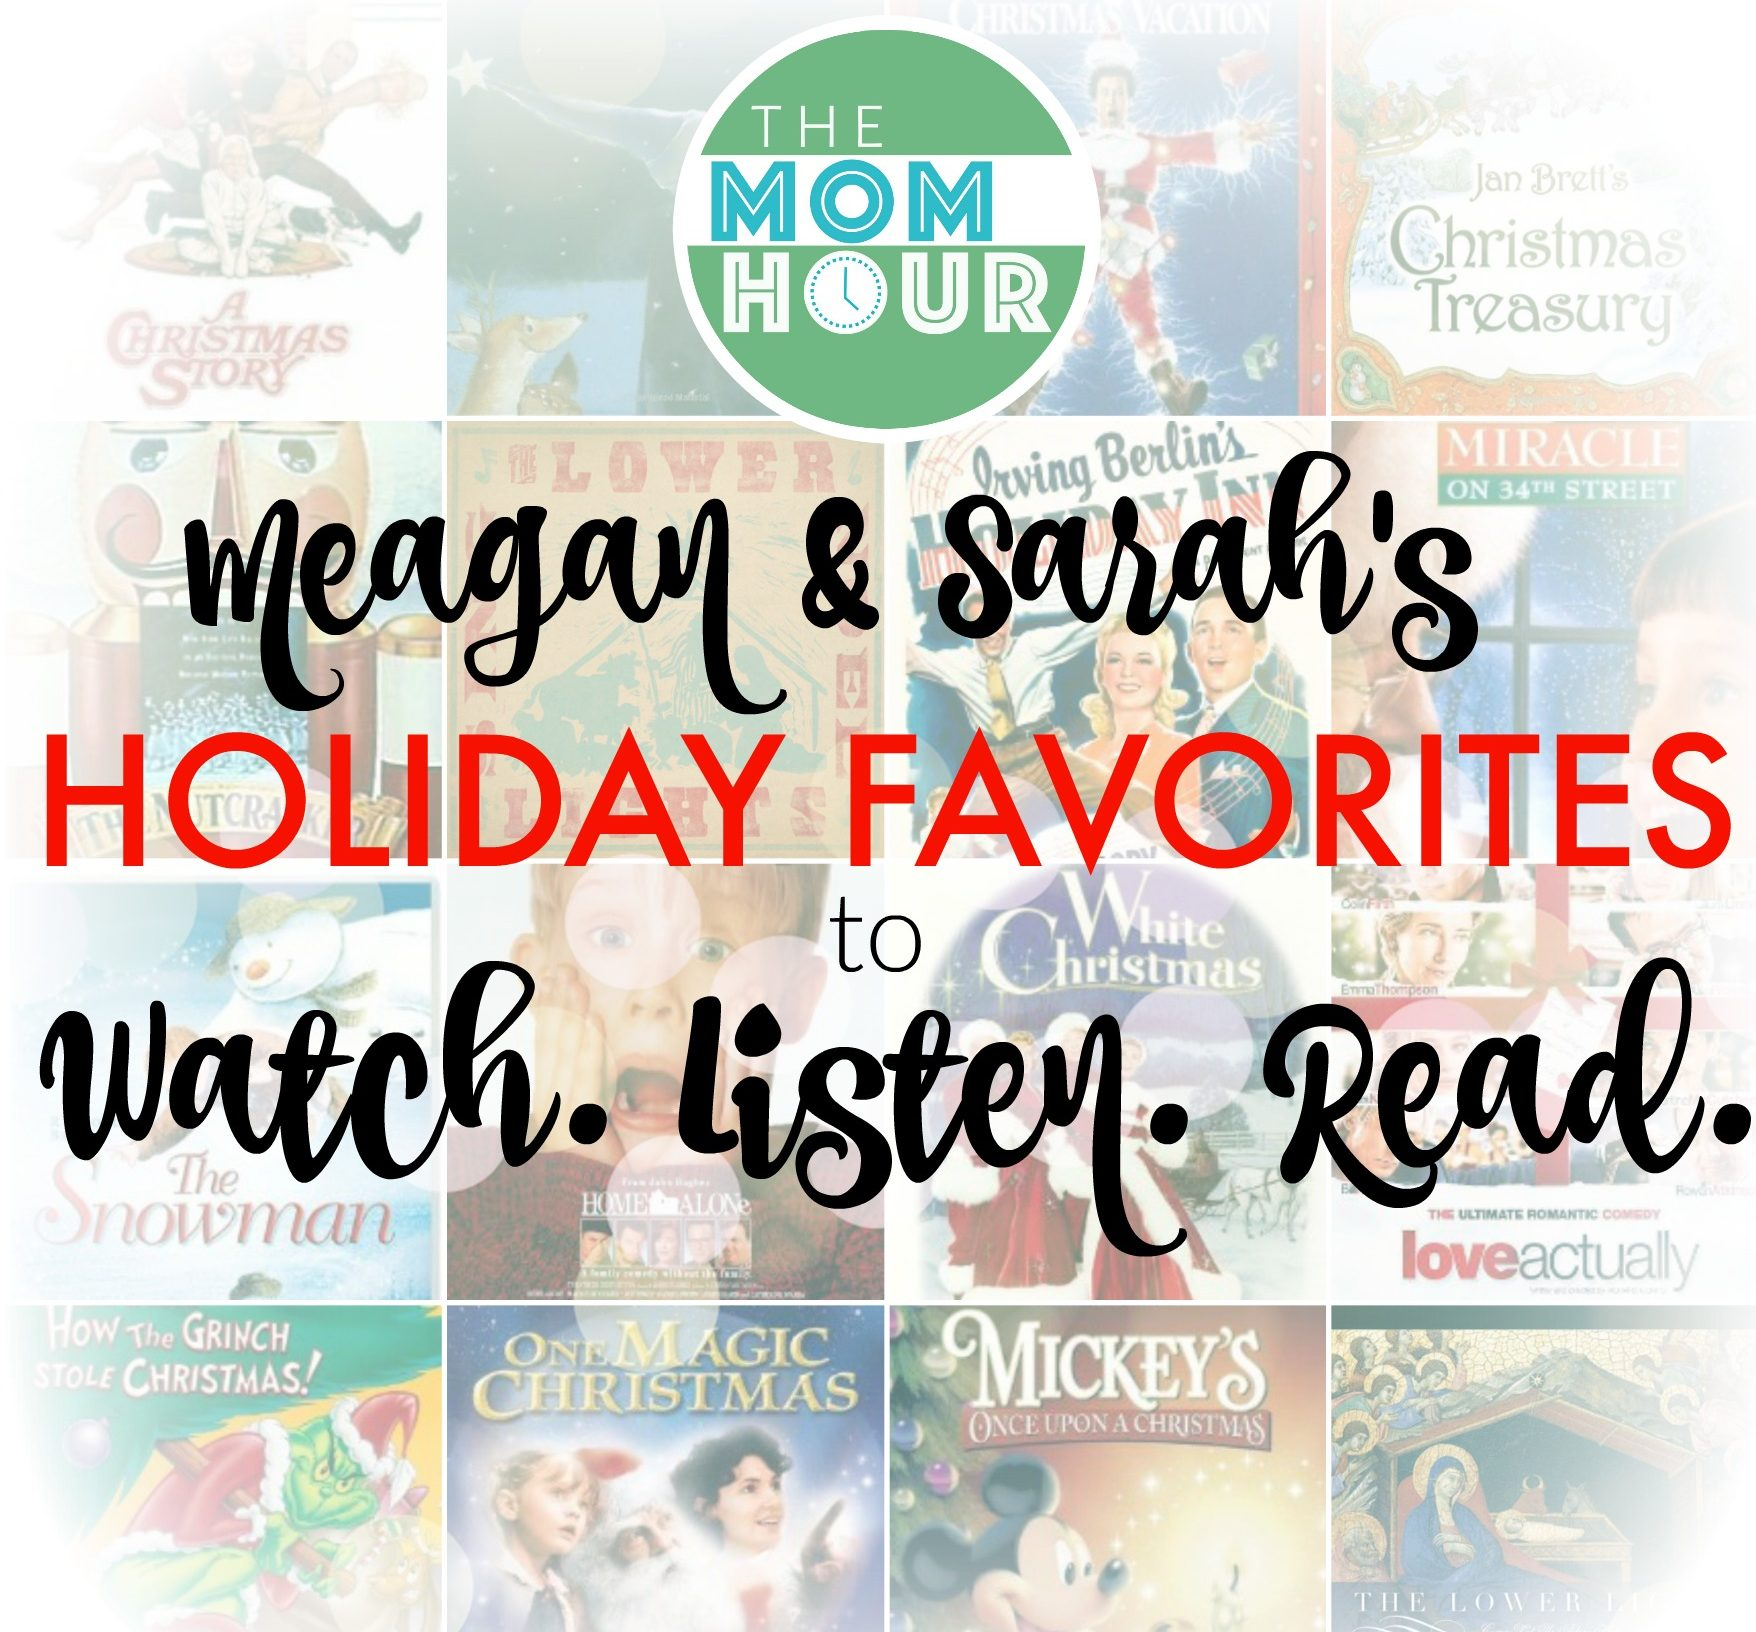 Holiday Favorites from The Mom Hour